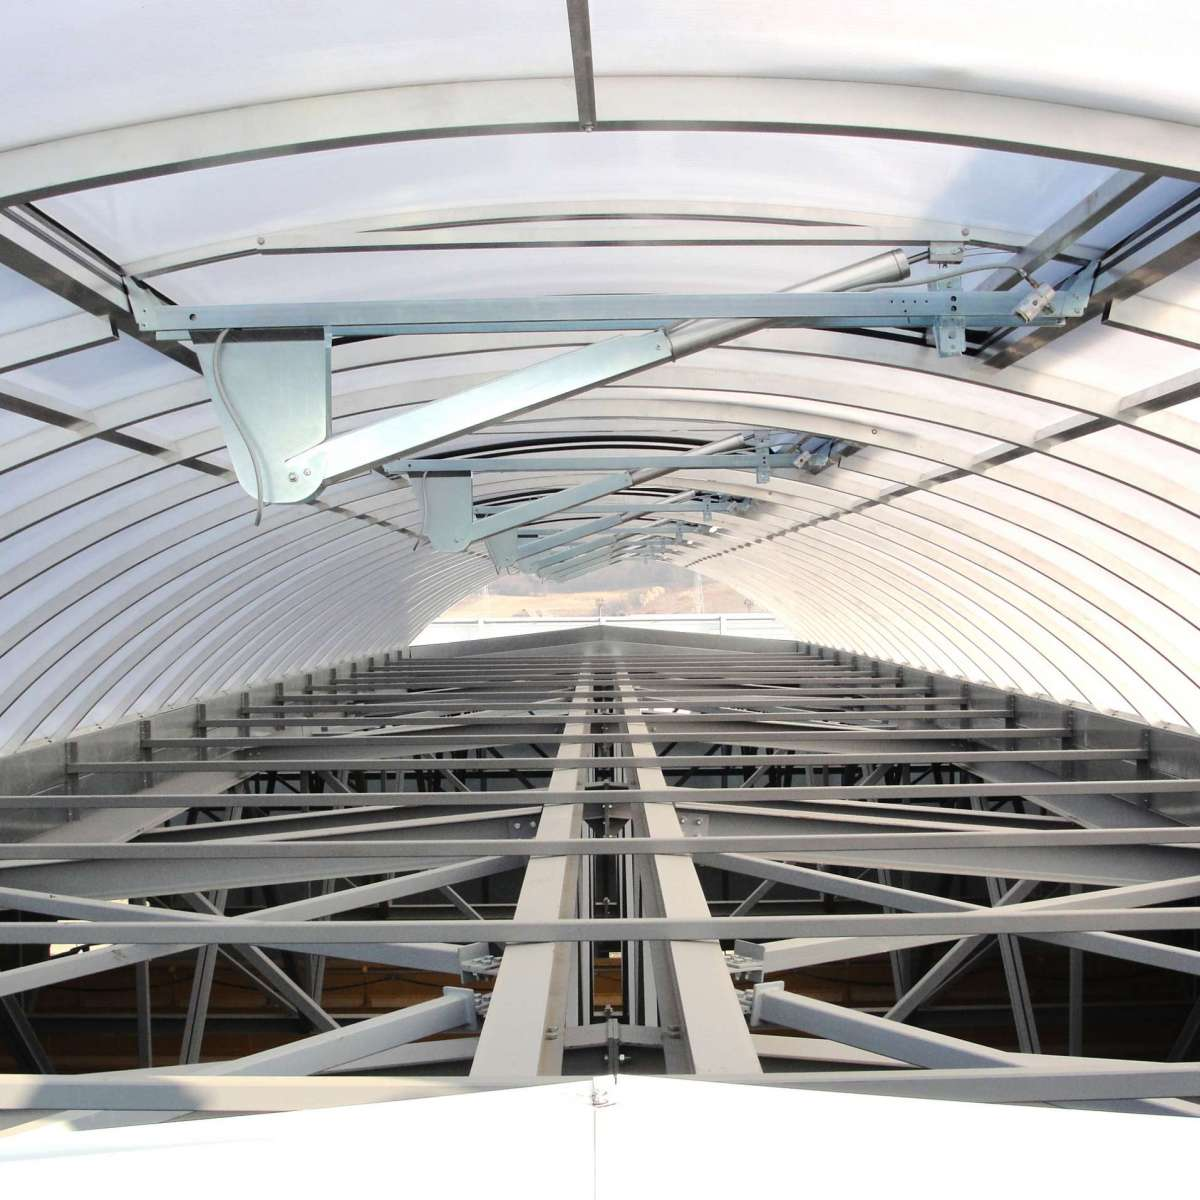 Tenaris | Zilach, Romania • 8 x  rooflight Topline ELS 30 x 6.70 m, 53 x NSHEV flaps provide safety and guarantee fresh air